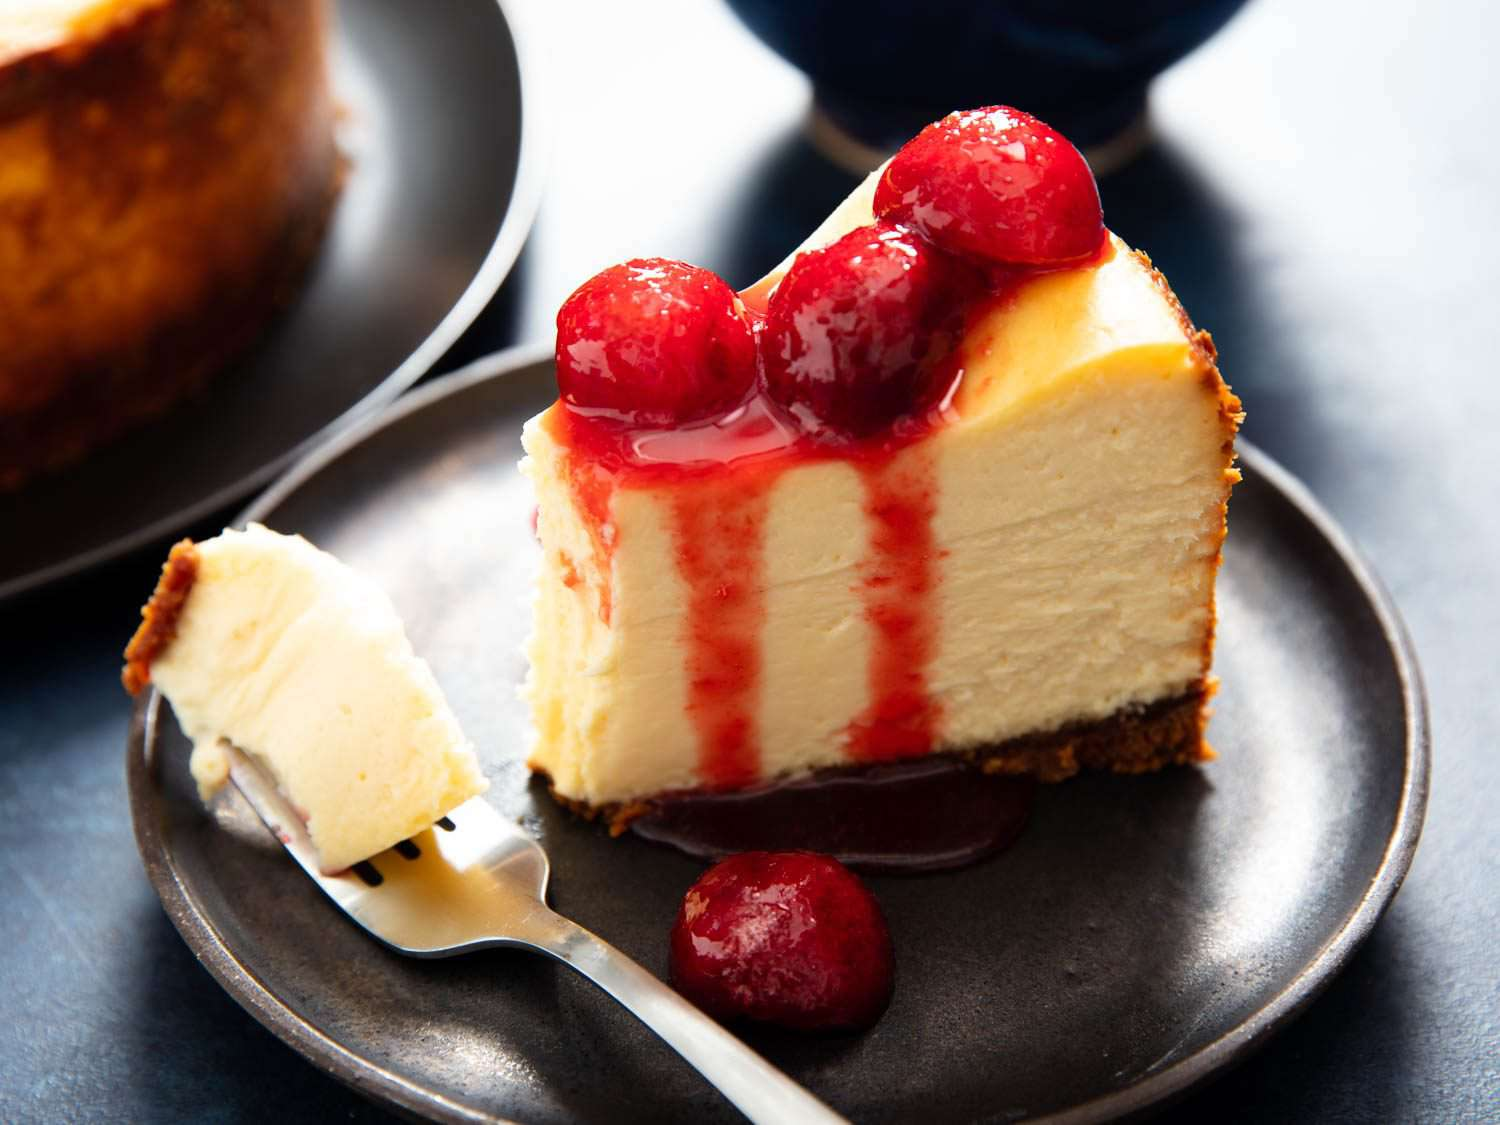 massive slice of cheesecake with a bite on a fork